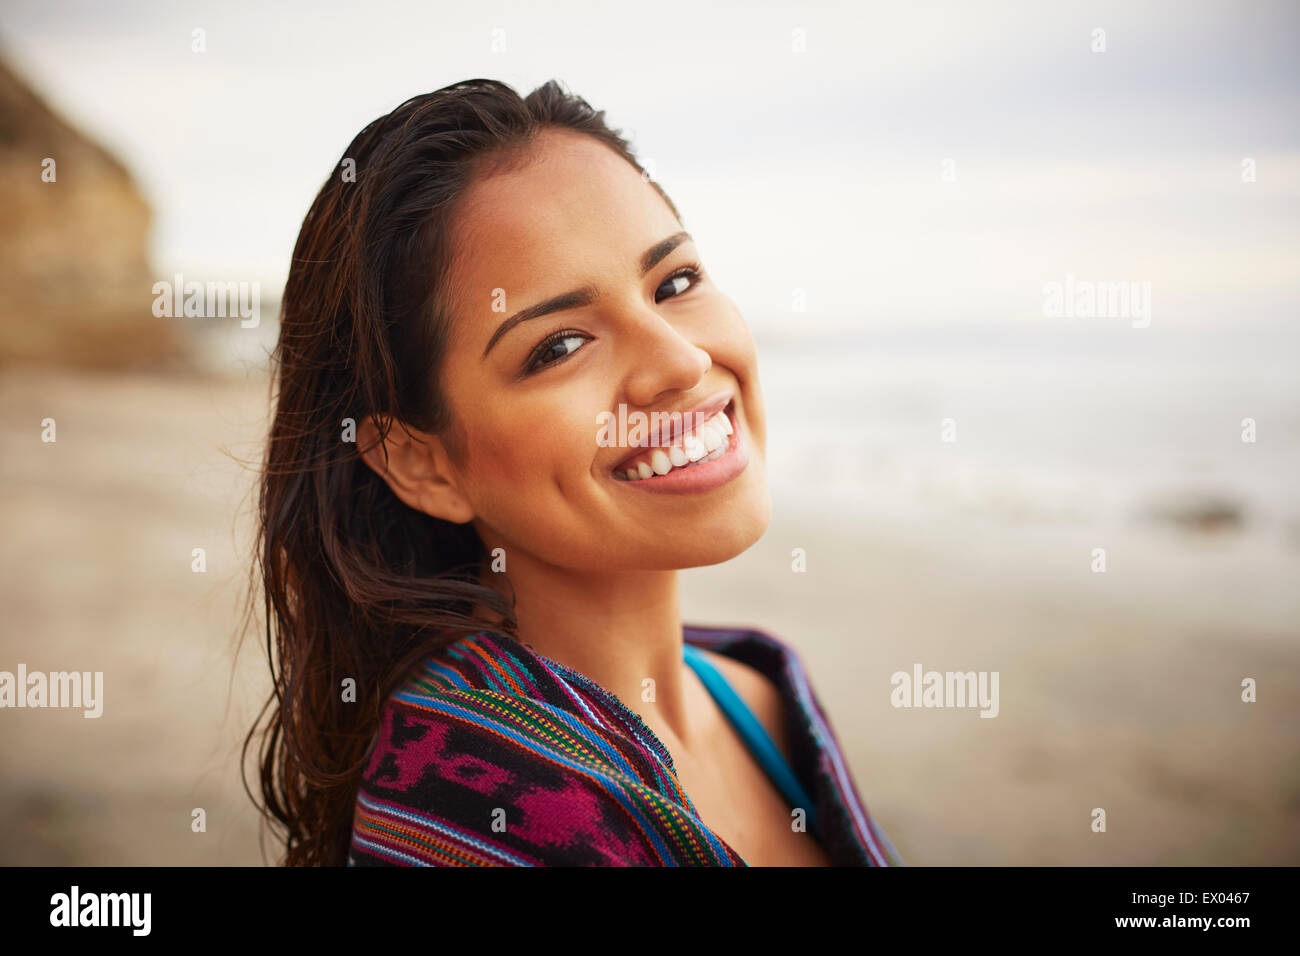 Portrait of smiling young woman wrapped in towel on beach, San Diego, California, USA Stock Photo